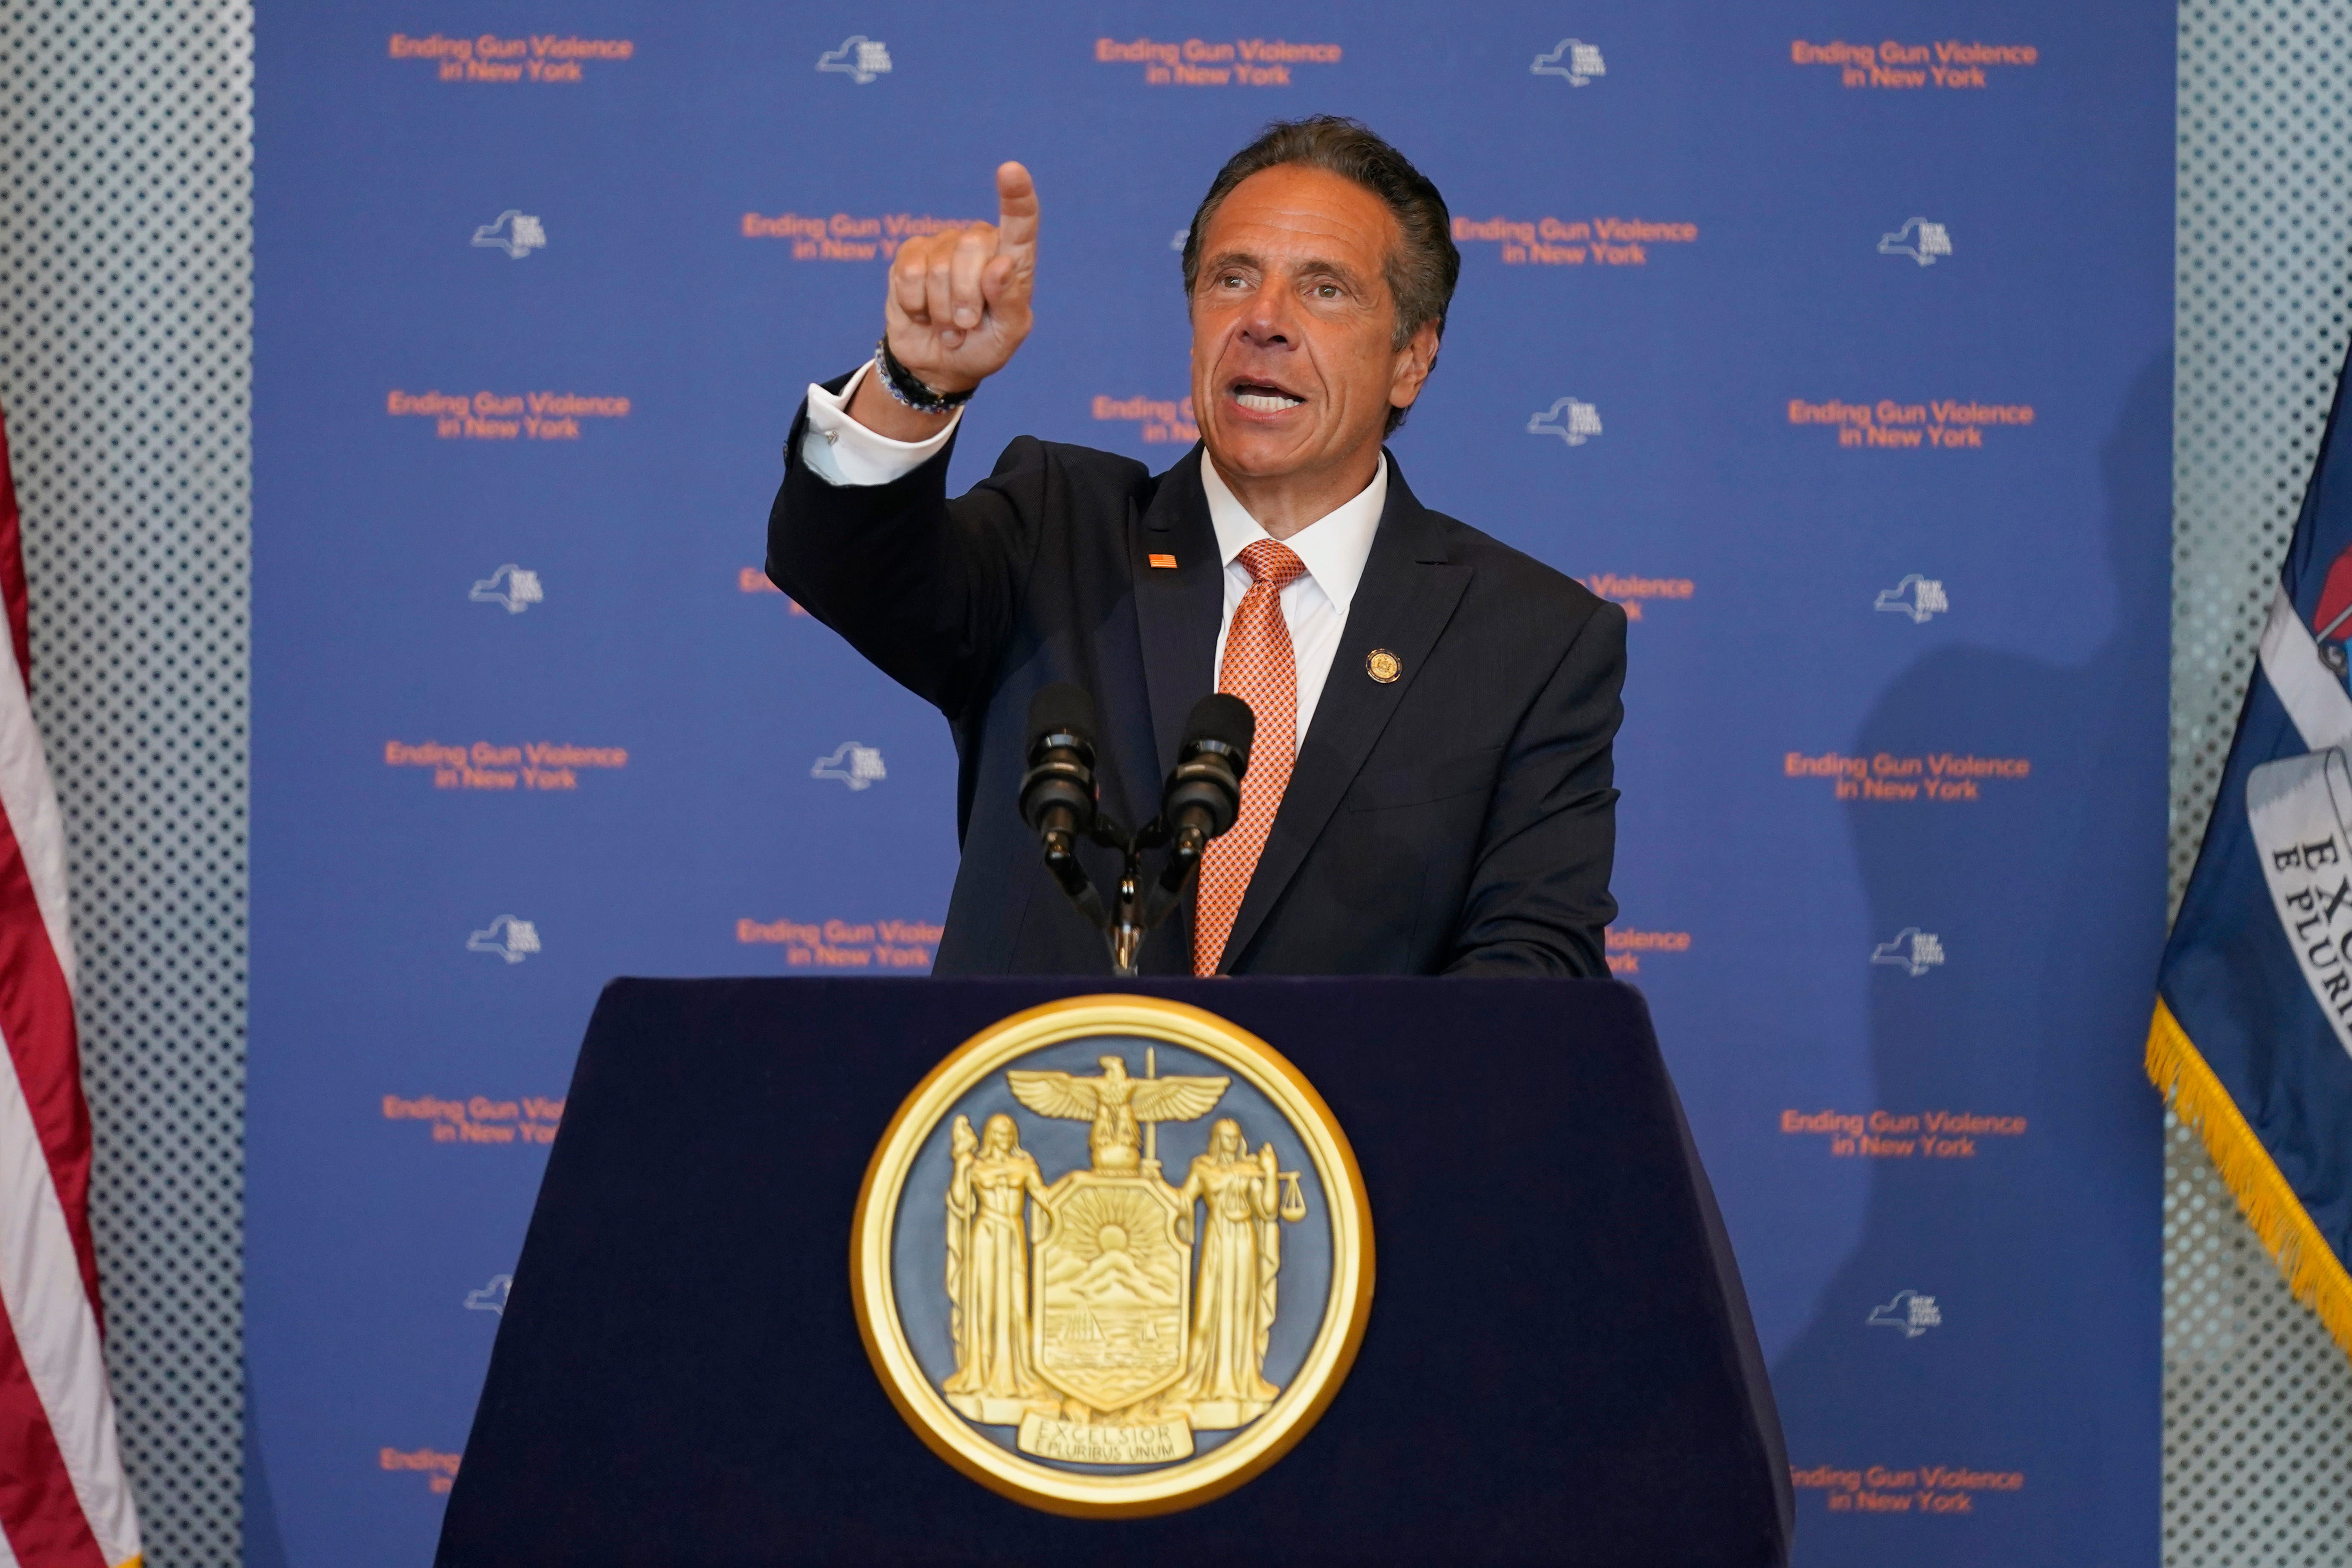 If Gov. Andrew Cuomo fights sexual harassment charges, he ll regret his statements